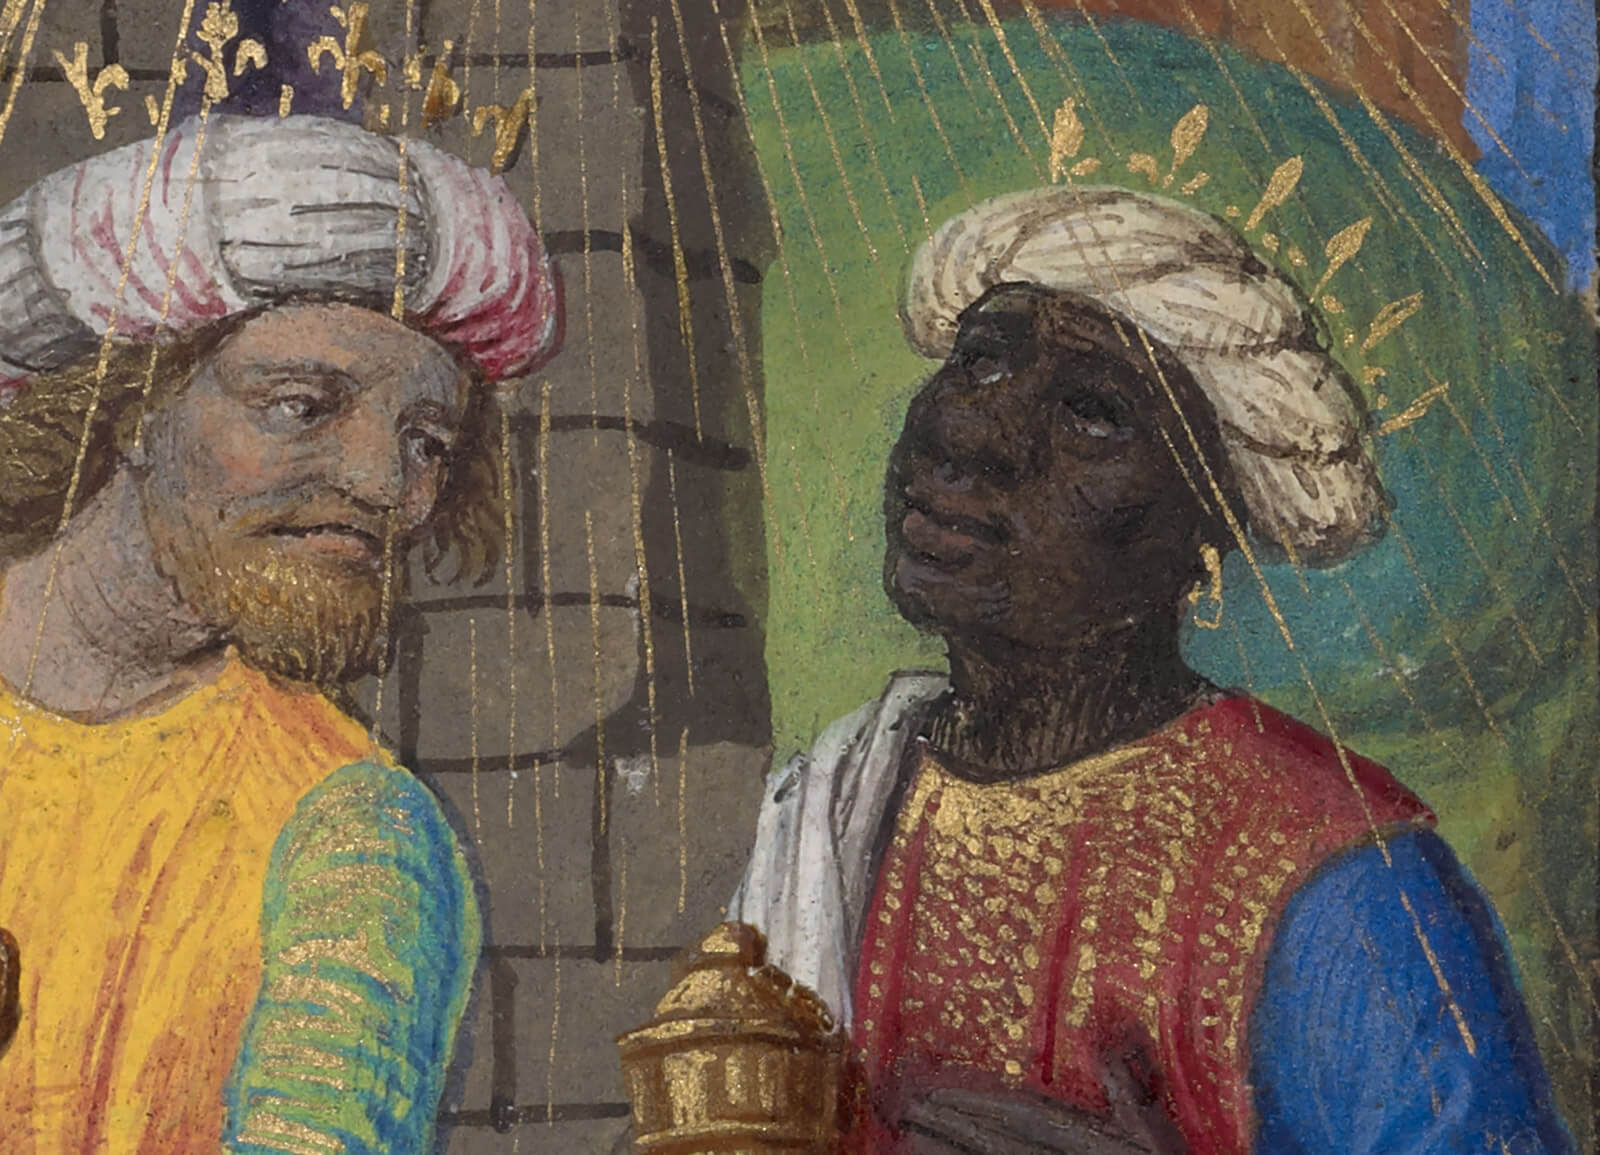 A New Exhibition Explores Balthazar A Black African King In Medieval And Renaissance European Art Getty Iris